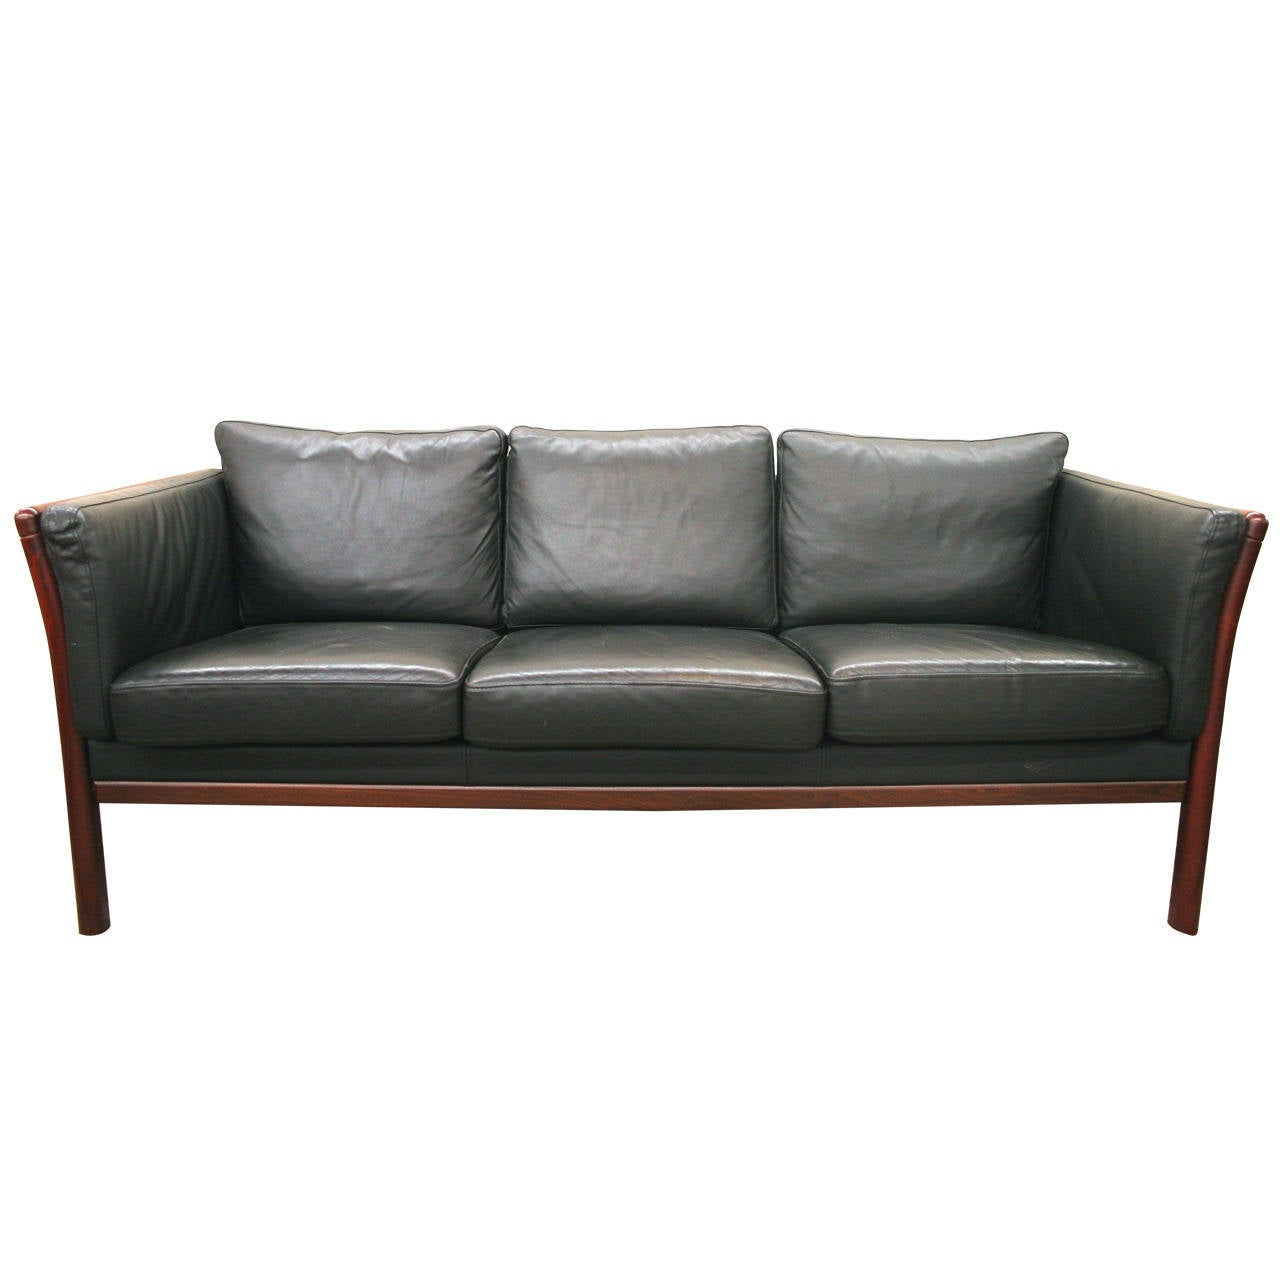 Scandinavian Modern Rosewood And Black Leather Sofa At 1stdibs